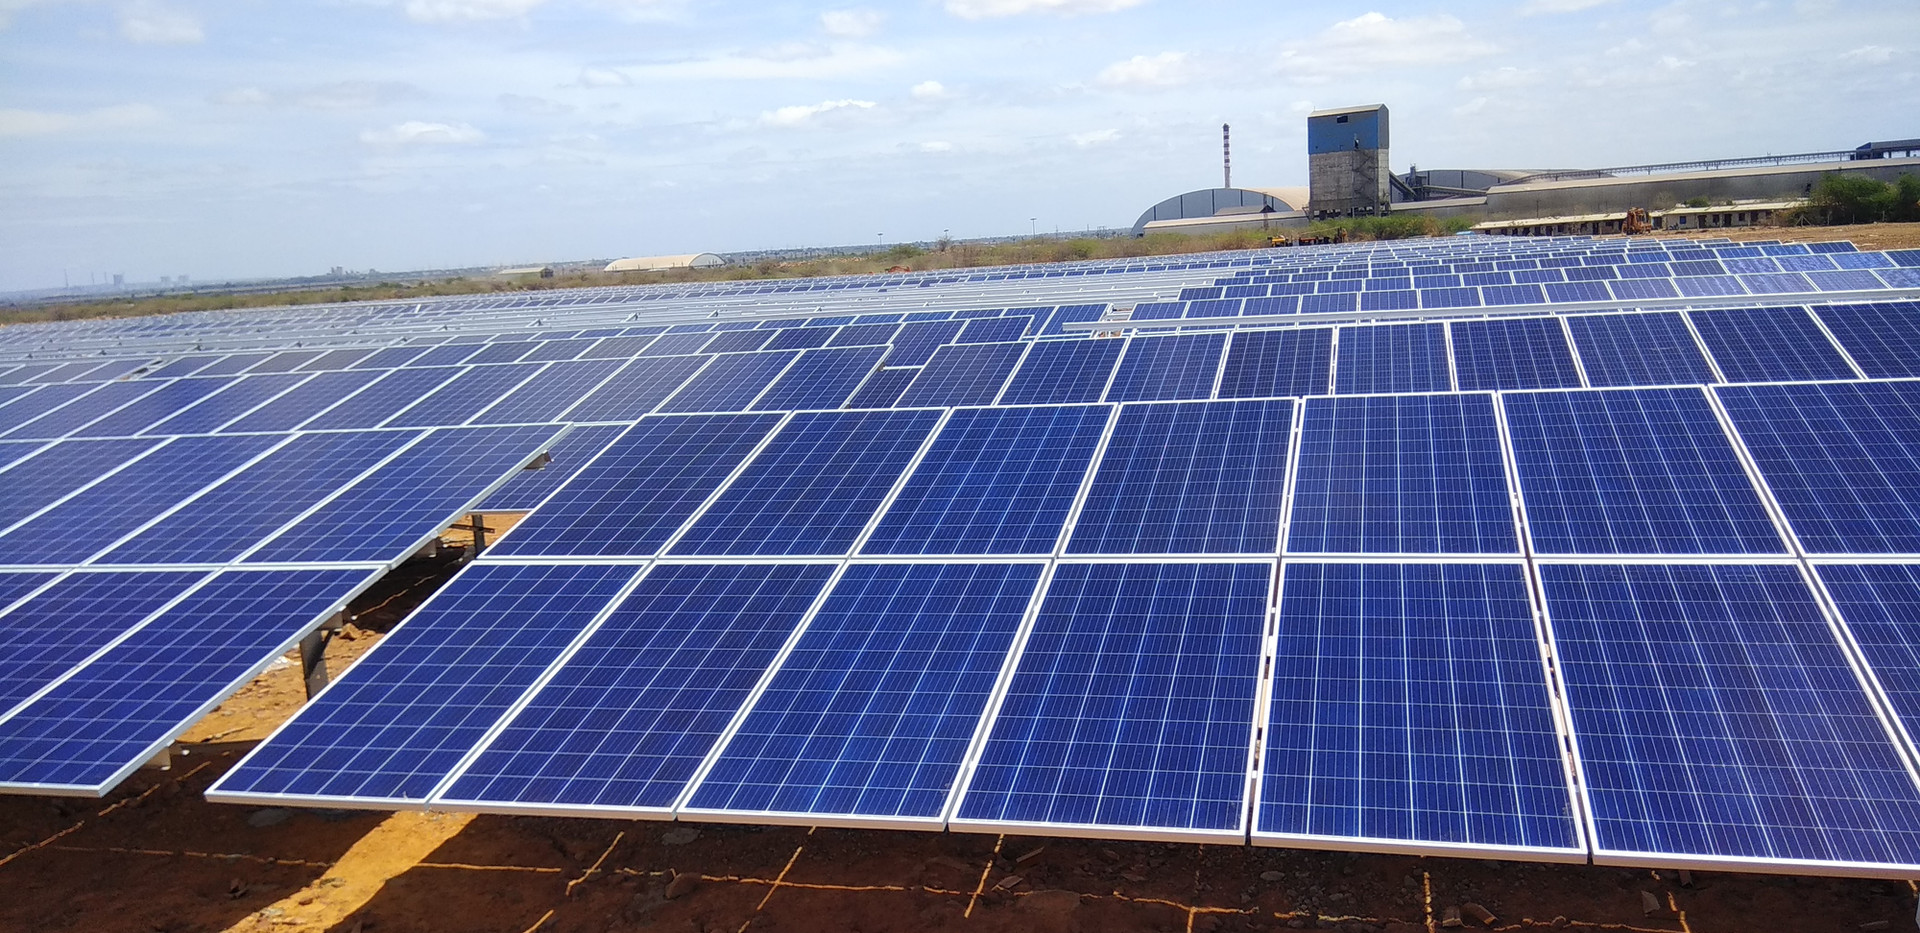 Bharathi Cements, ground mounted installation with RenewSys modules, India